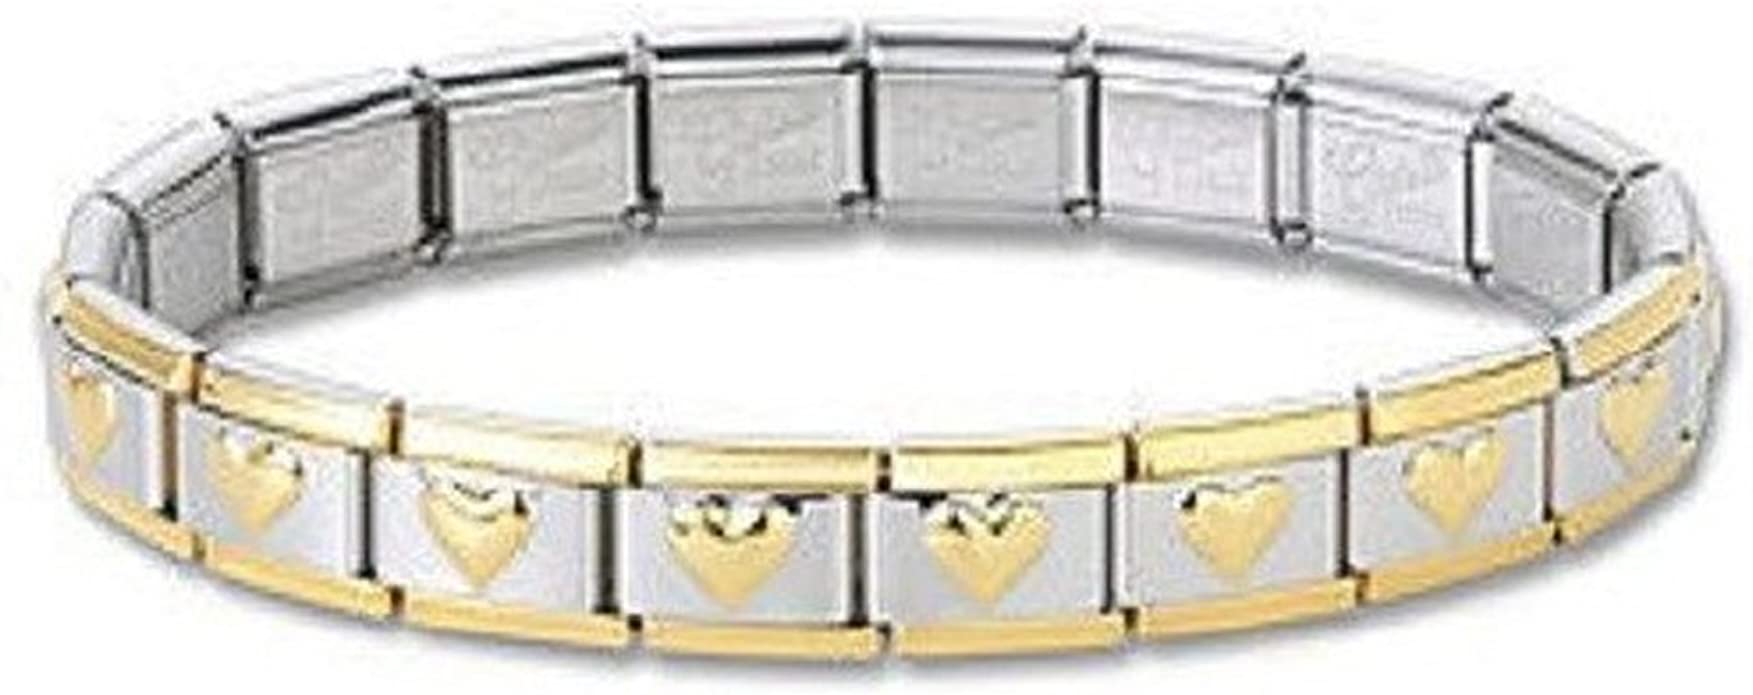 Italian Charm Bracelets Stainless Steel Gold Heart 9 mm Link Free Shipping New